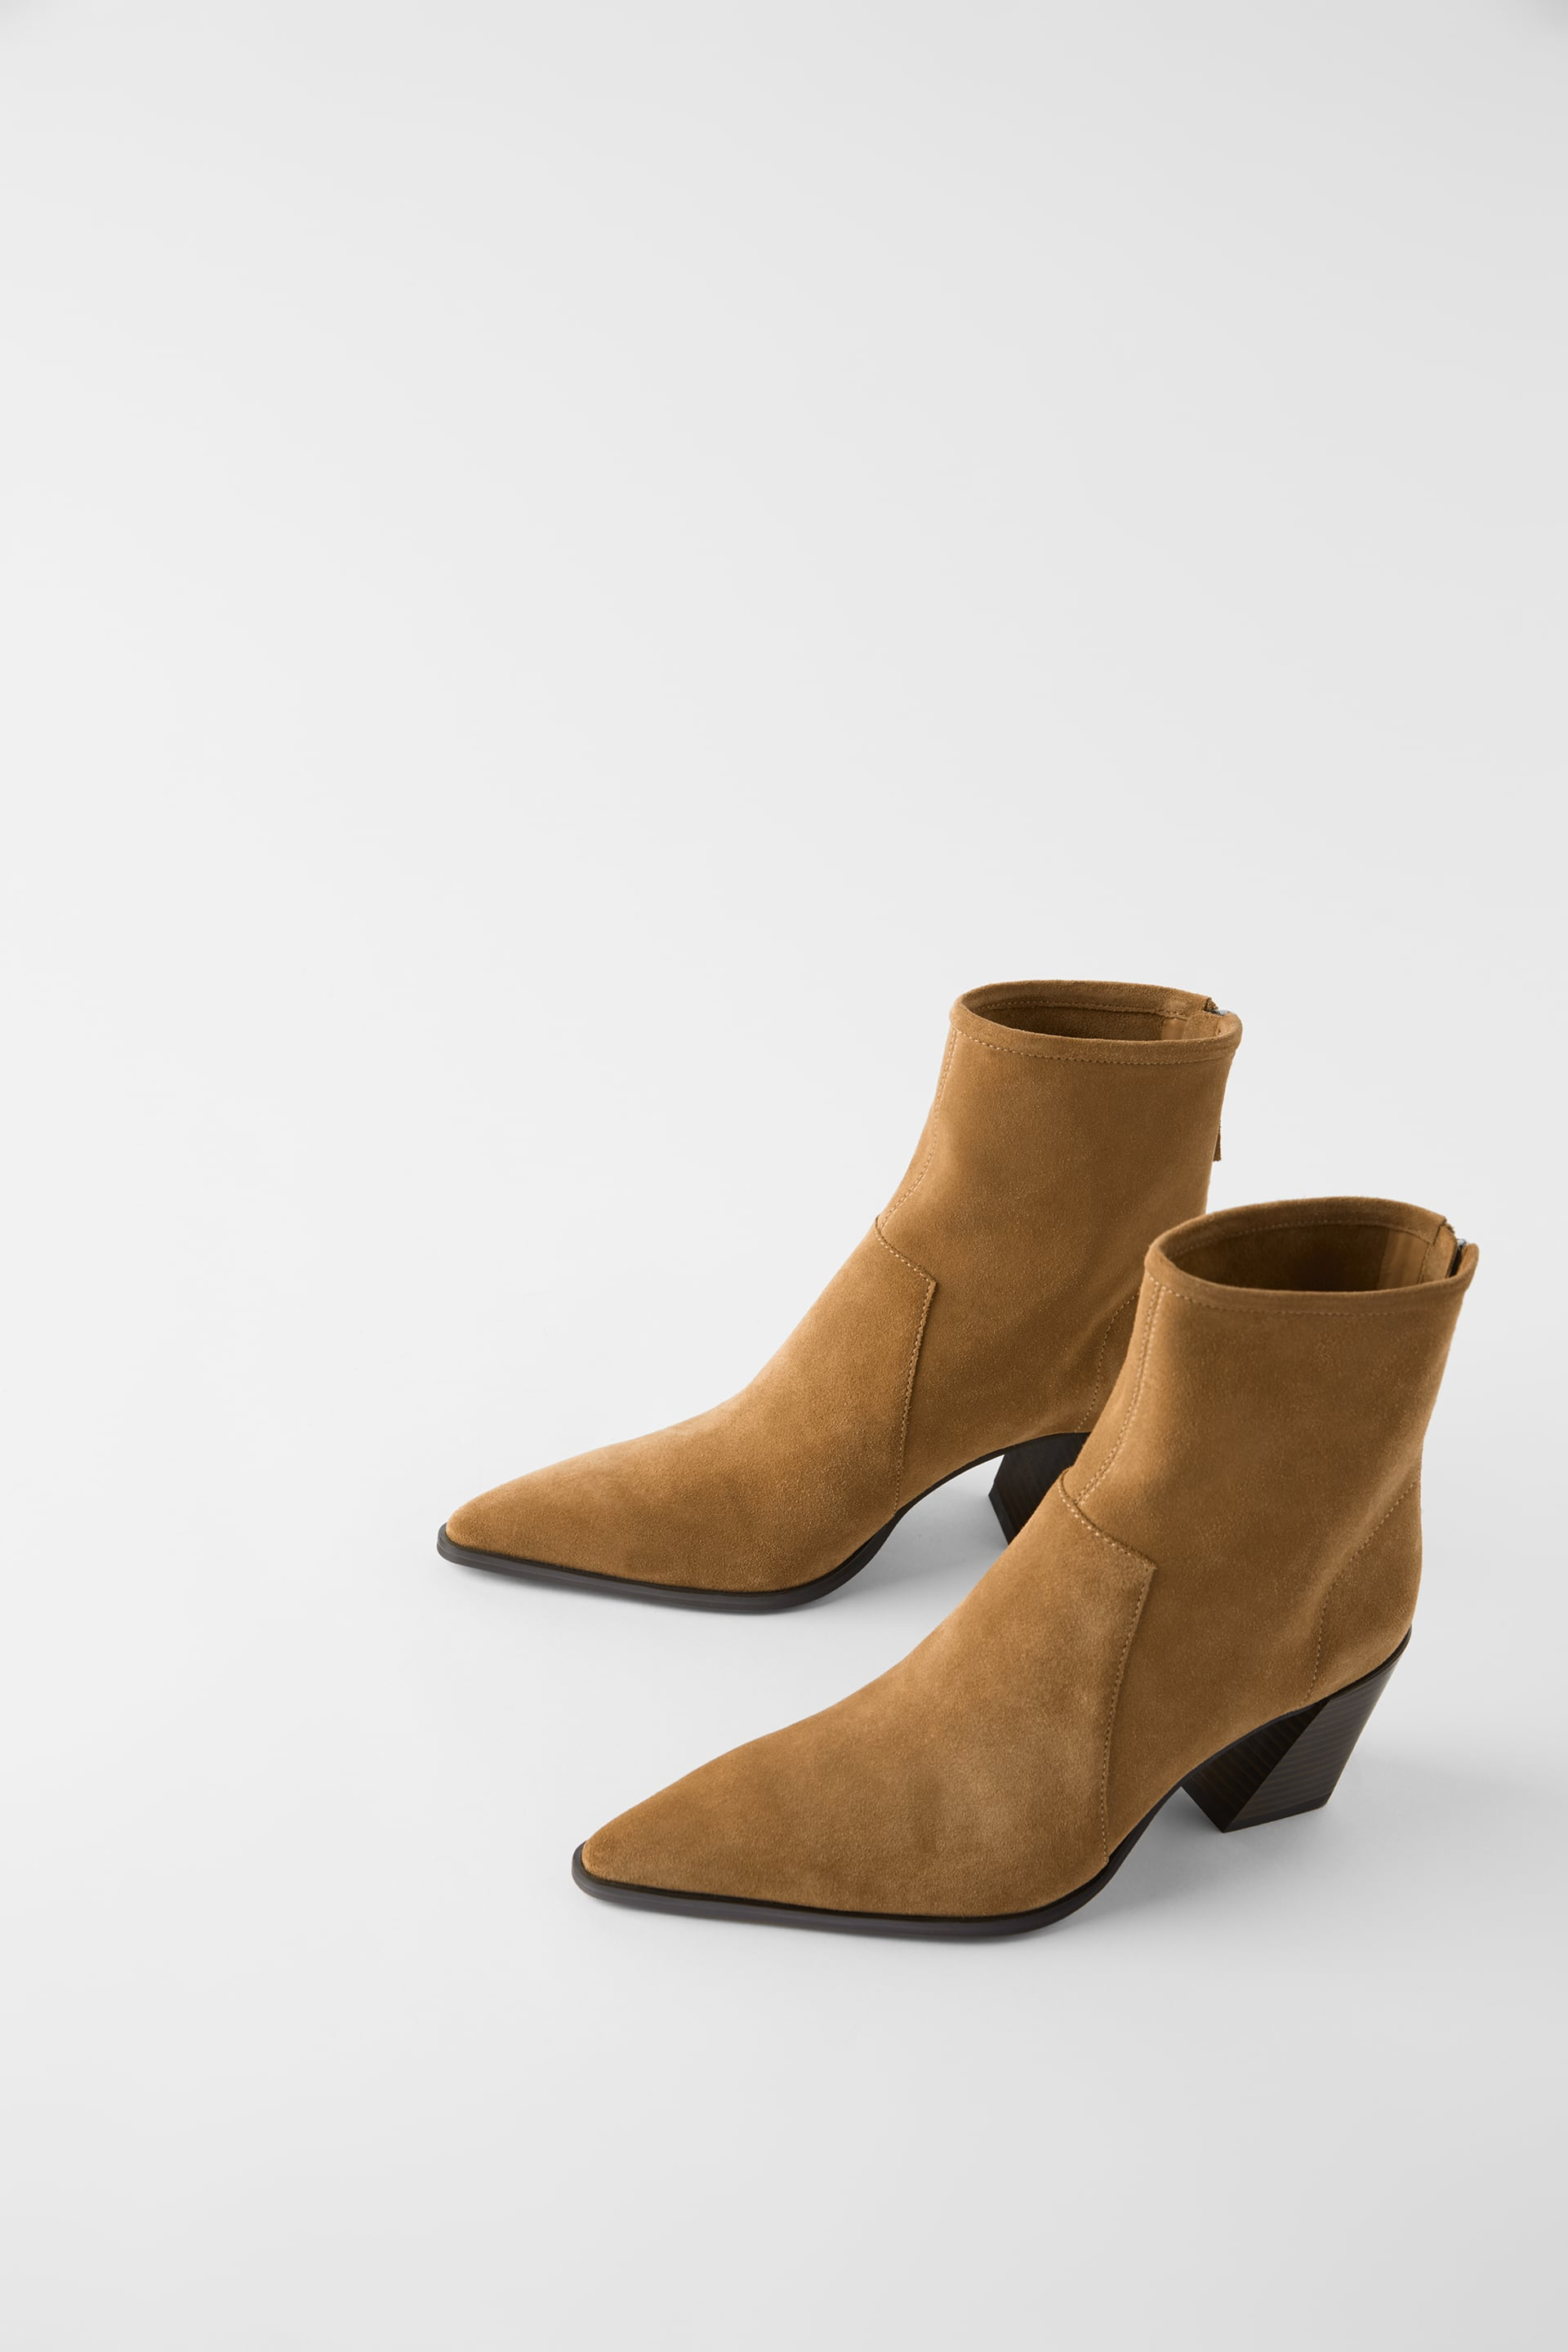 5. brown boots